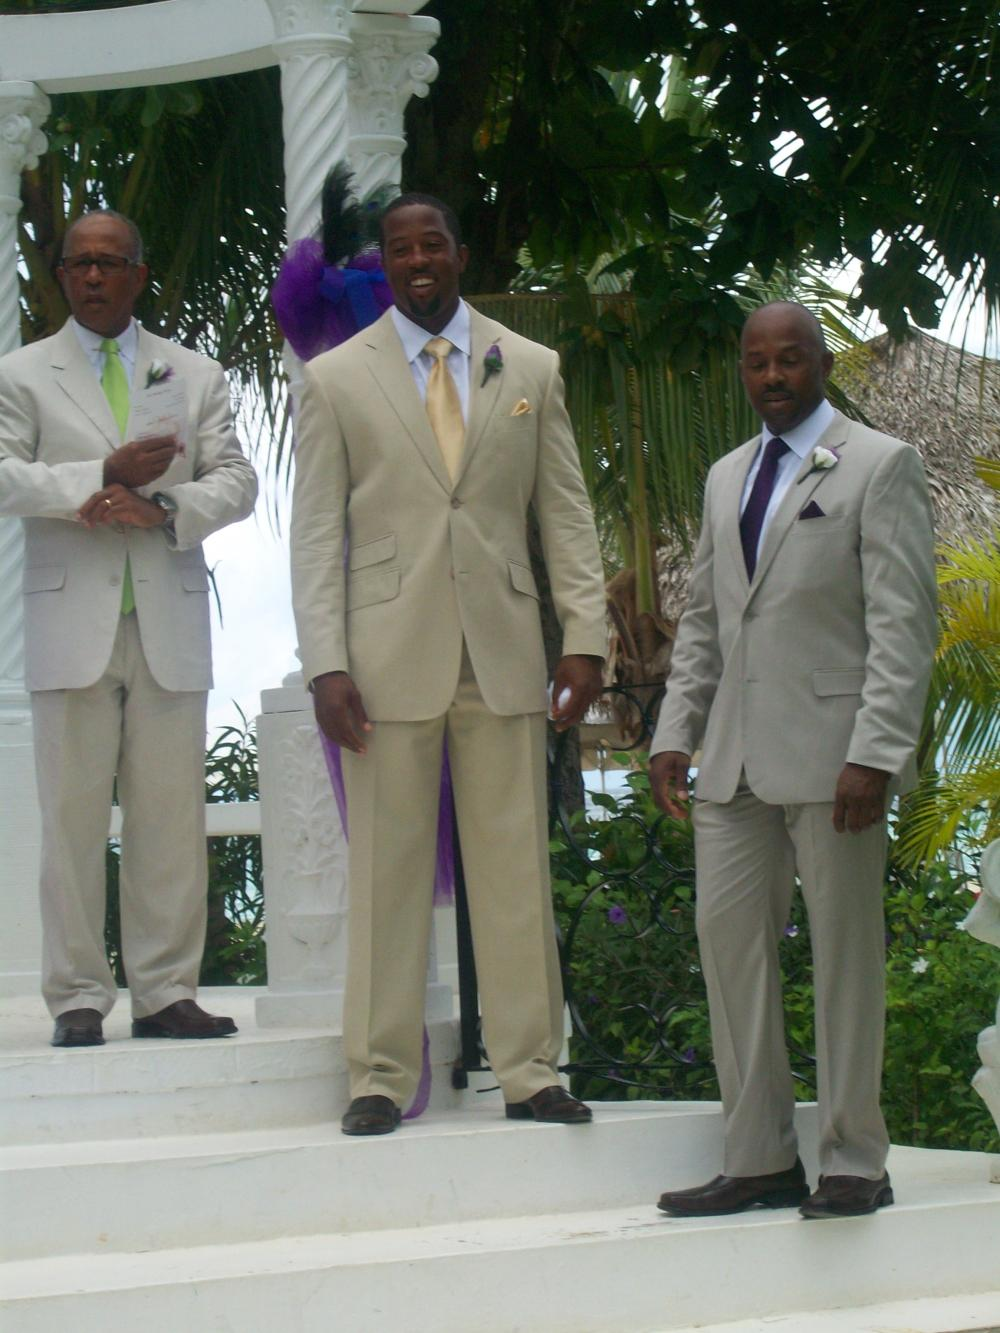 The groom, minister and best man waiting for Cynthia to enter.